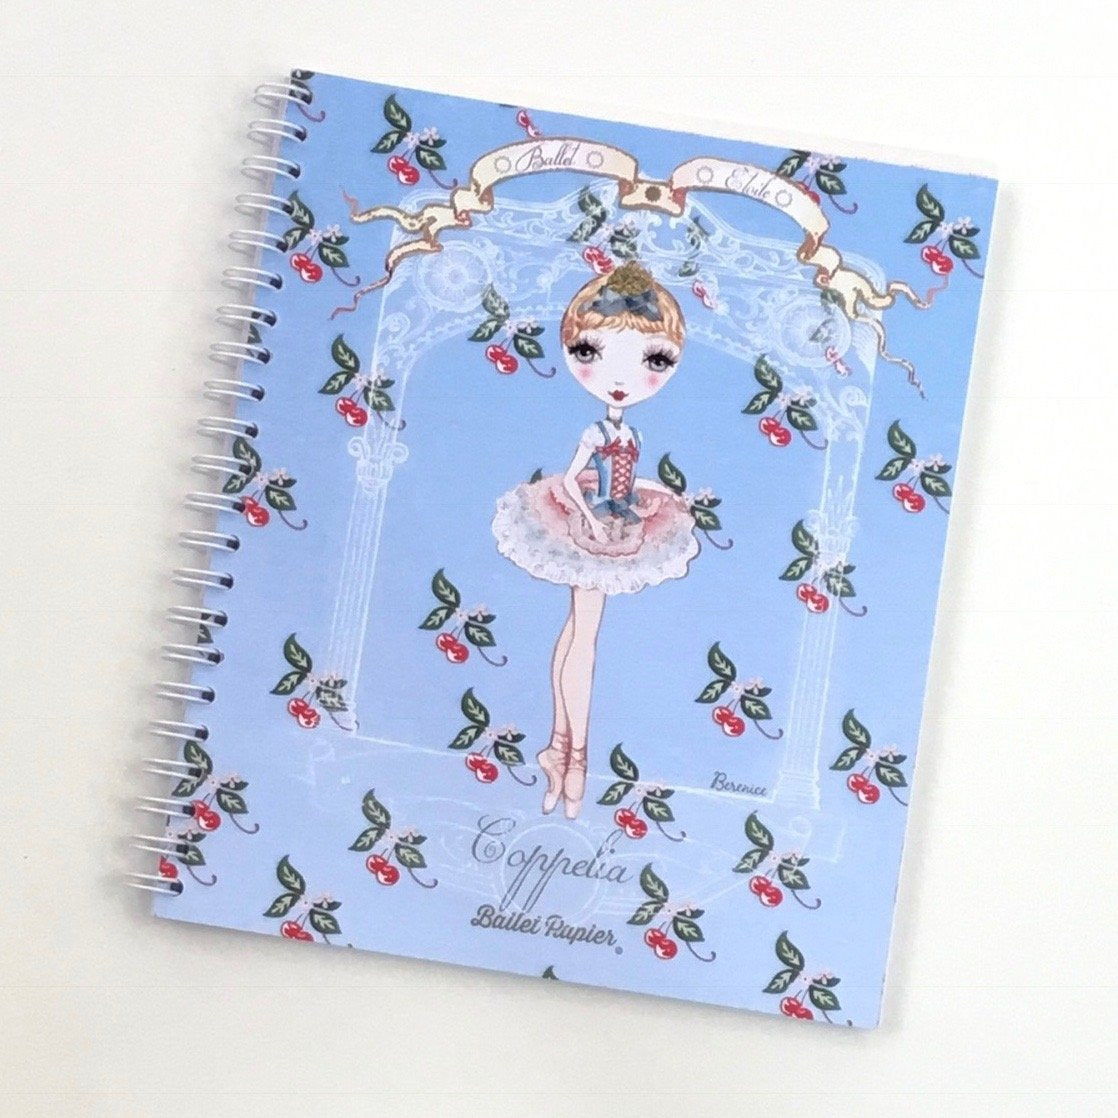 Ballet Etoiles Notebook - Coppelia